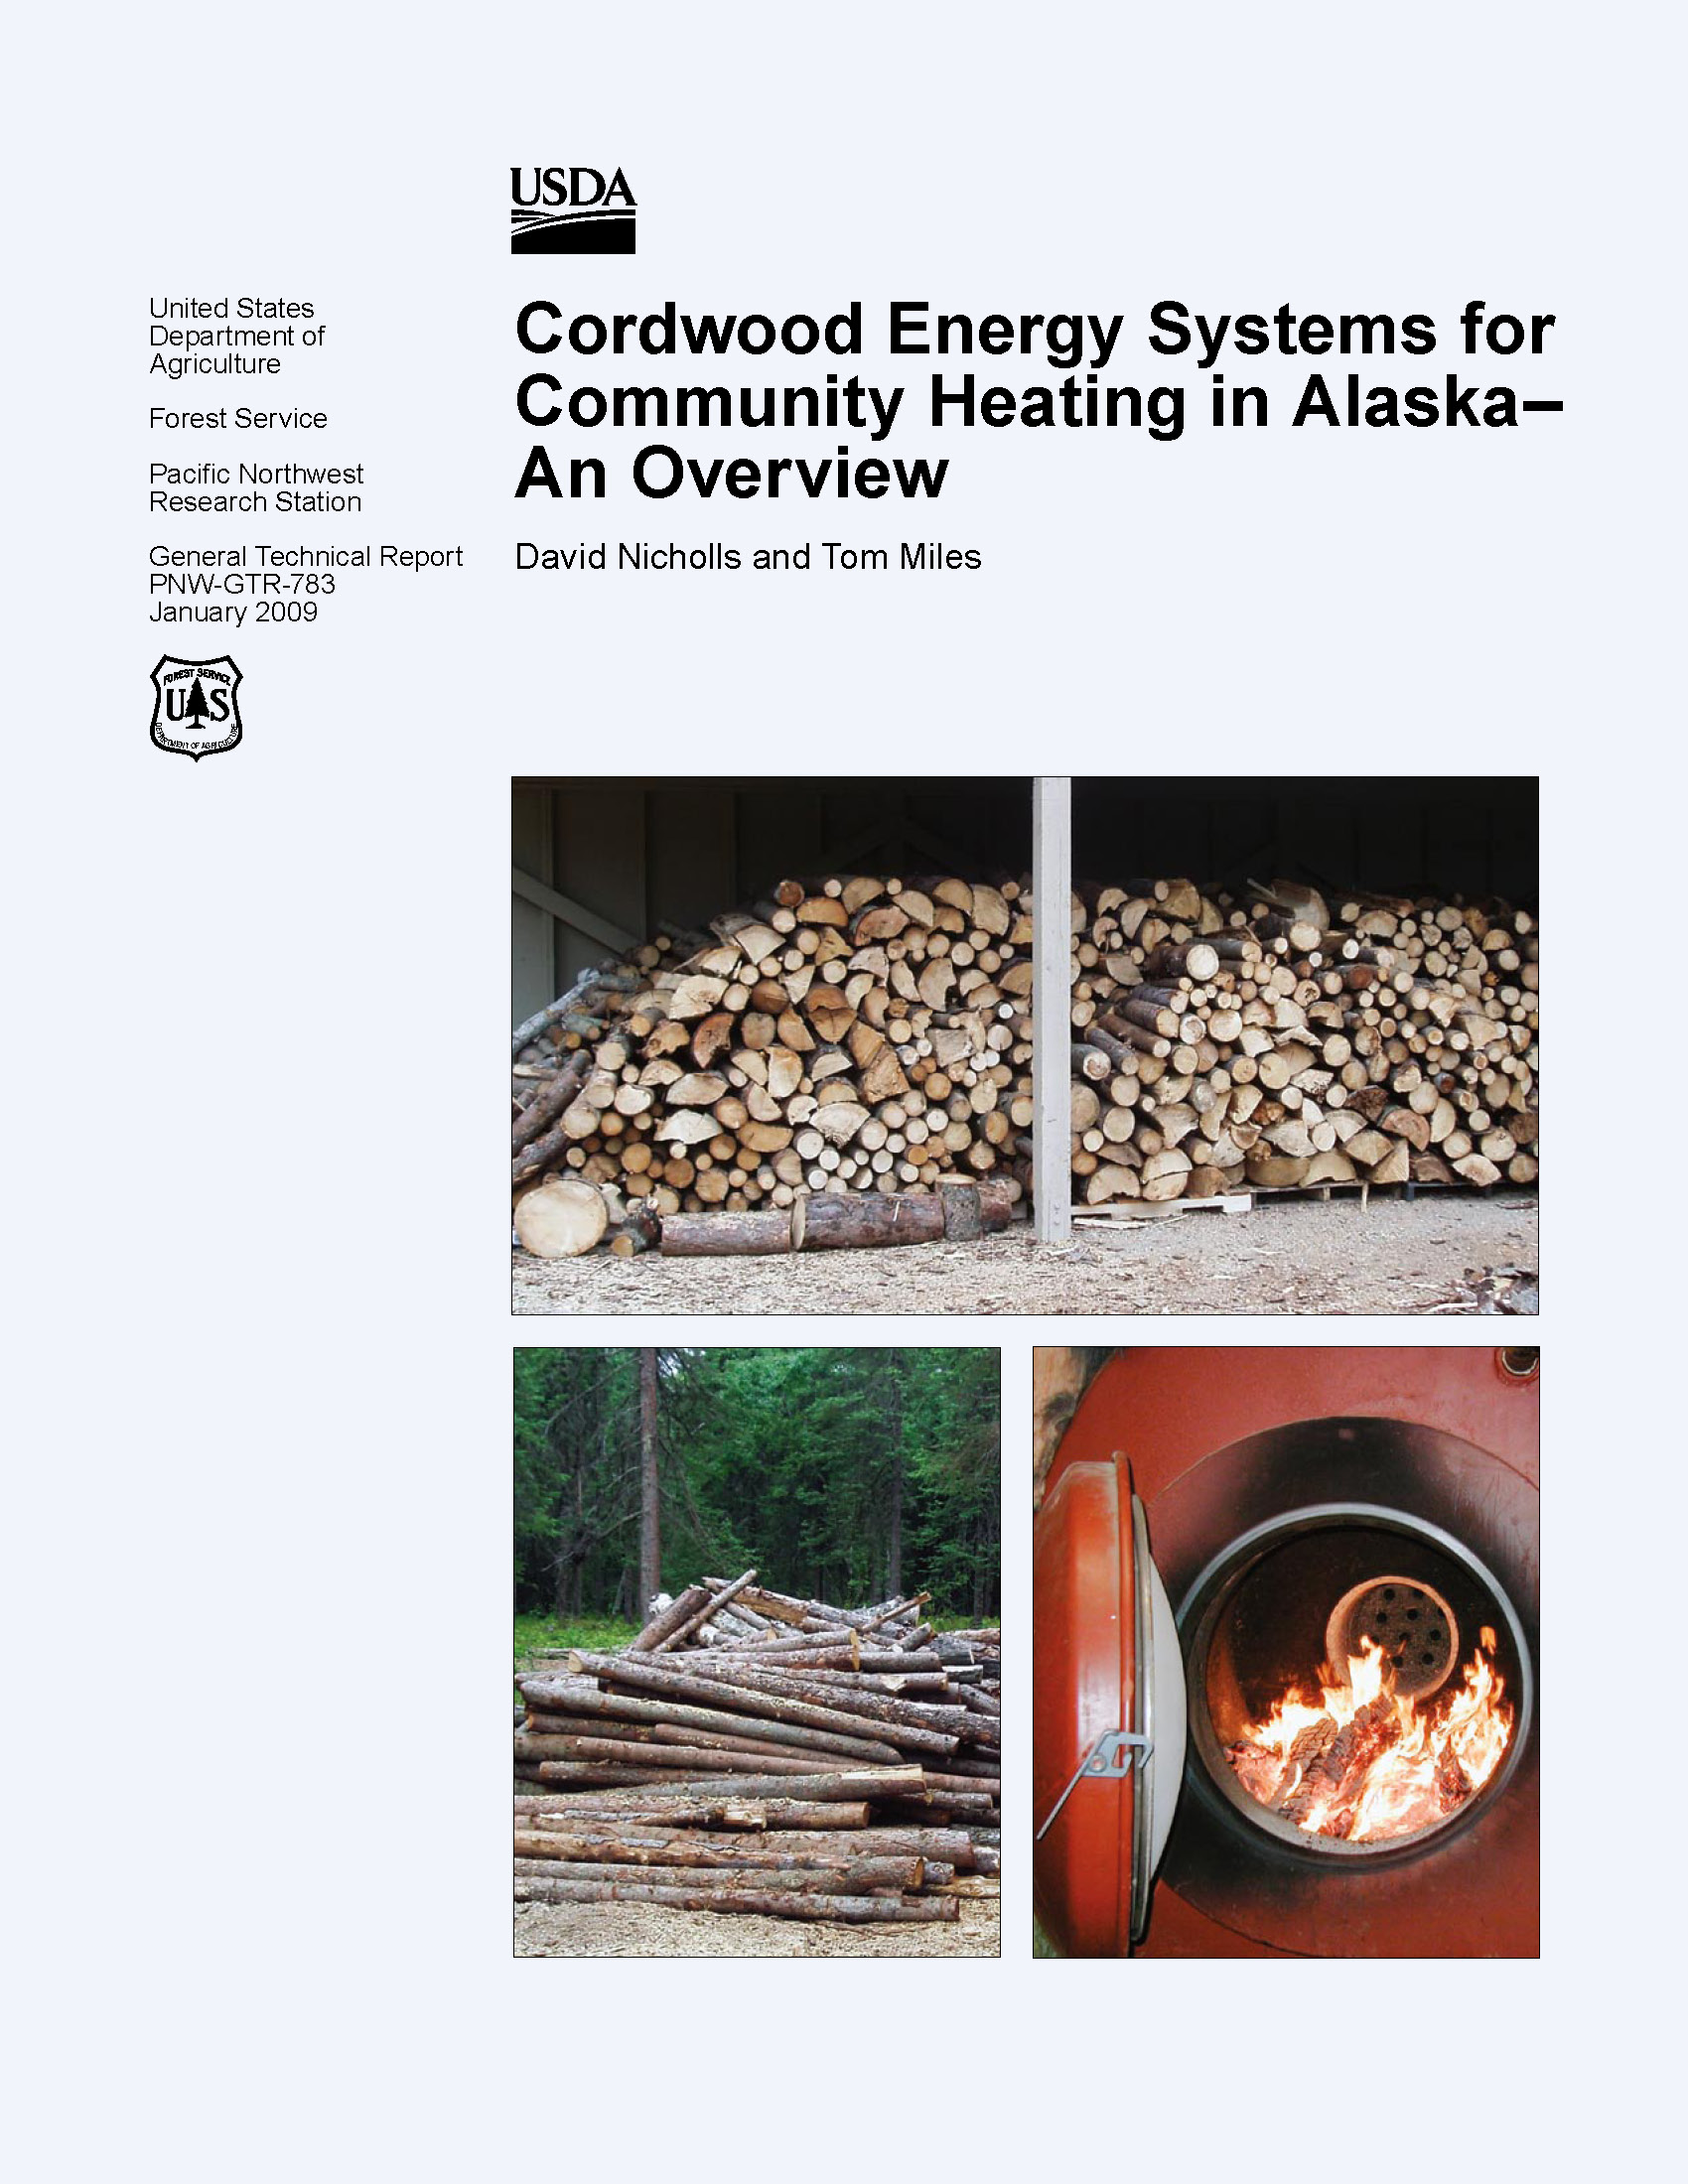 An Overview of Cordwood Energy Systems for Community Heating in Alaska